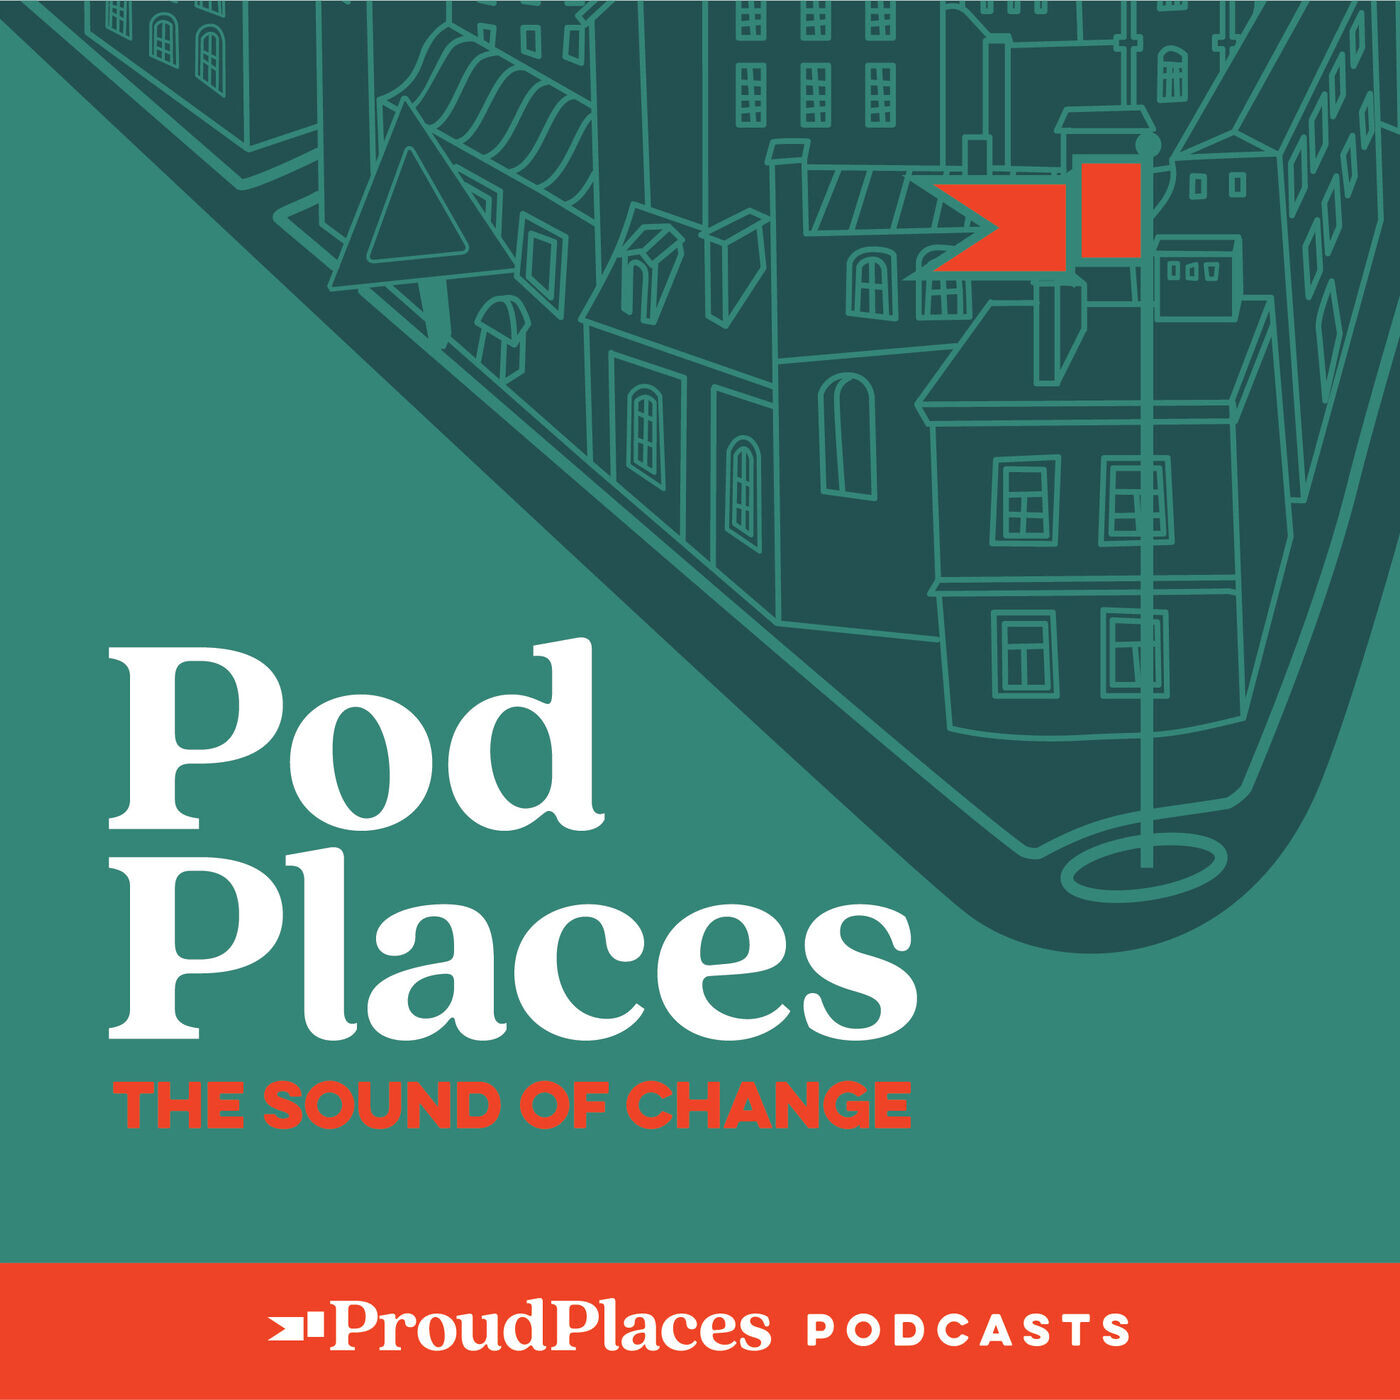 Proud Places 10.19.20 - Winter Cities and Shopping Local